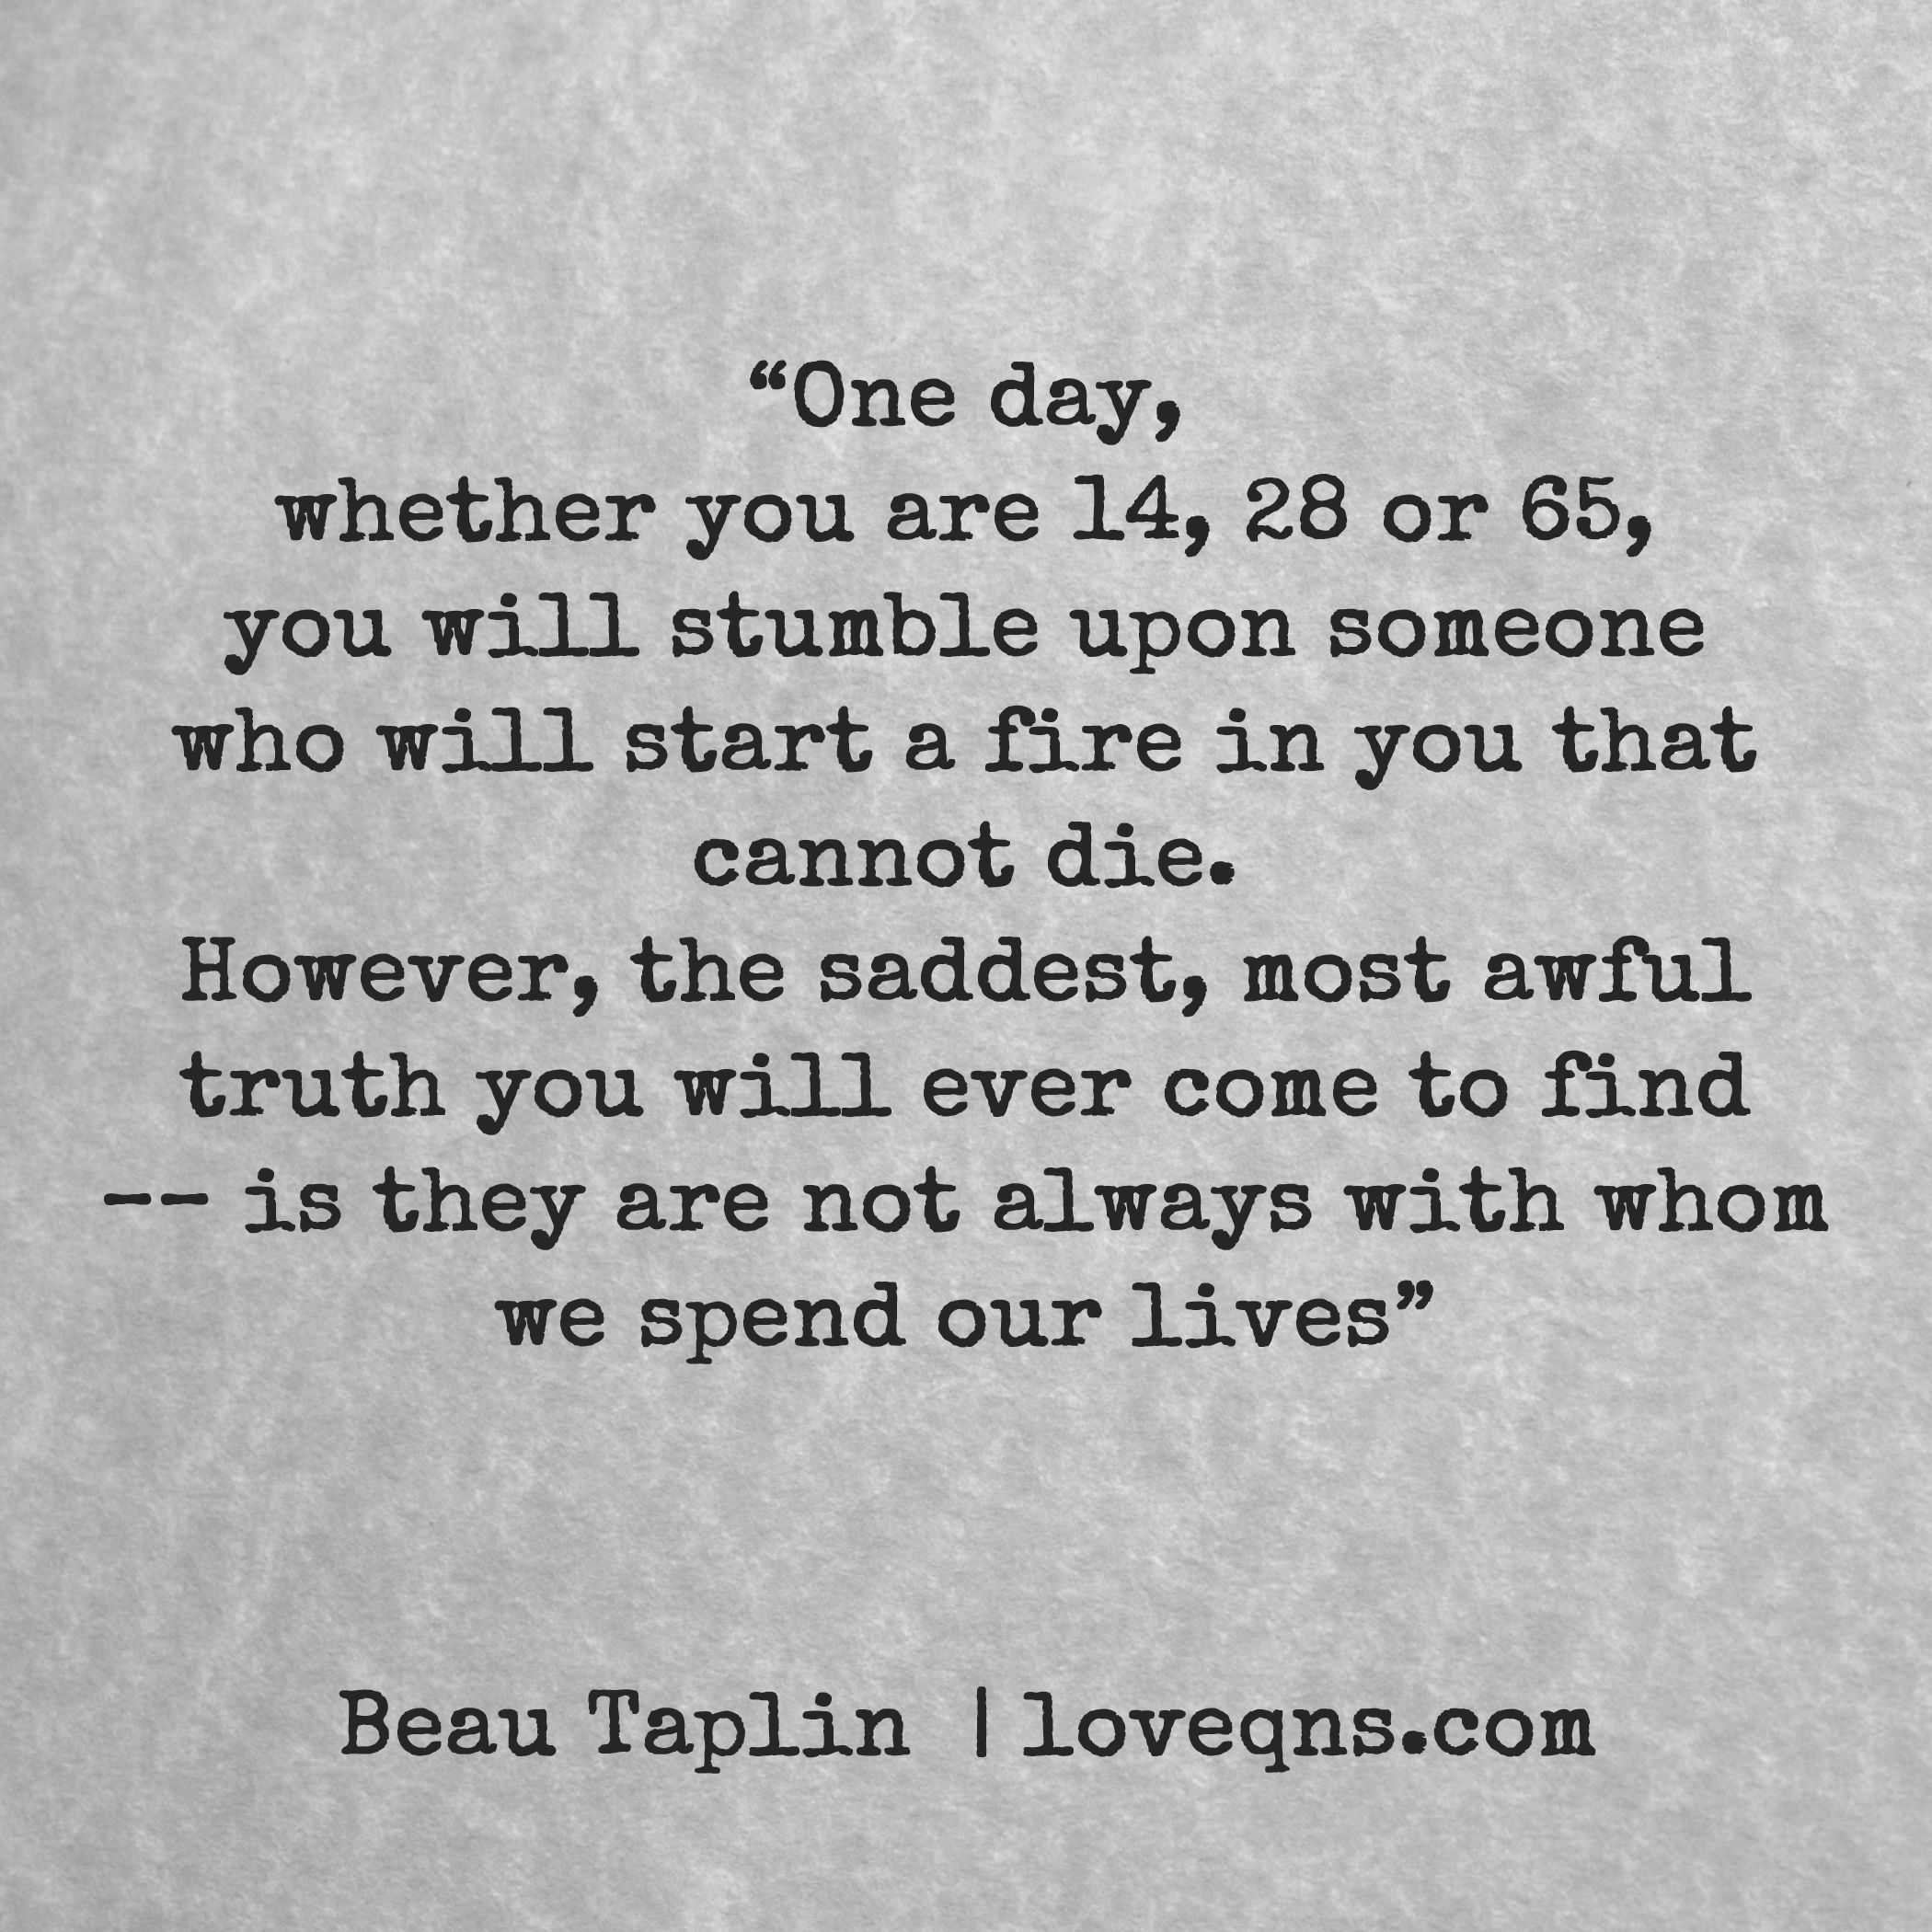 """Quotes About Love: """"One Day, Whether You Are 14, 28 Or 65, You Will Stumble"""